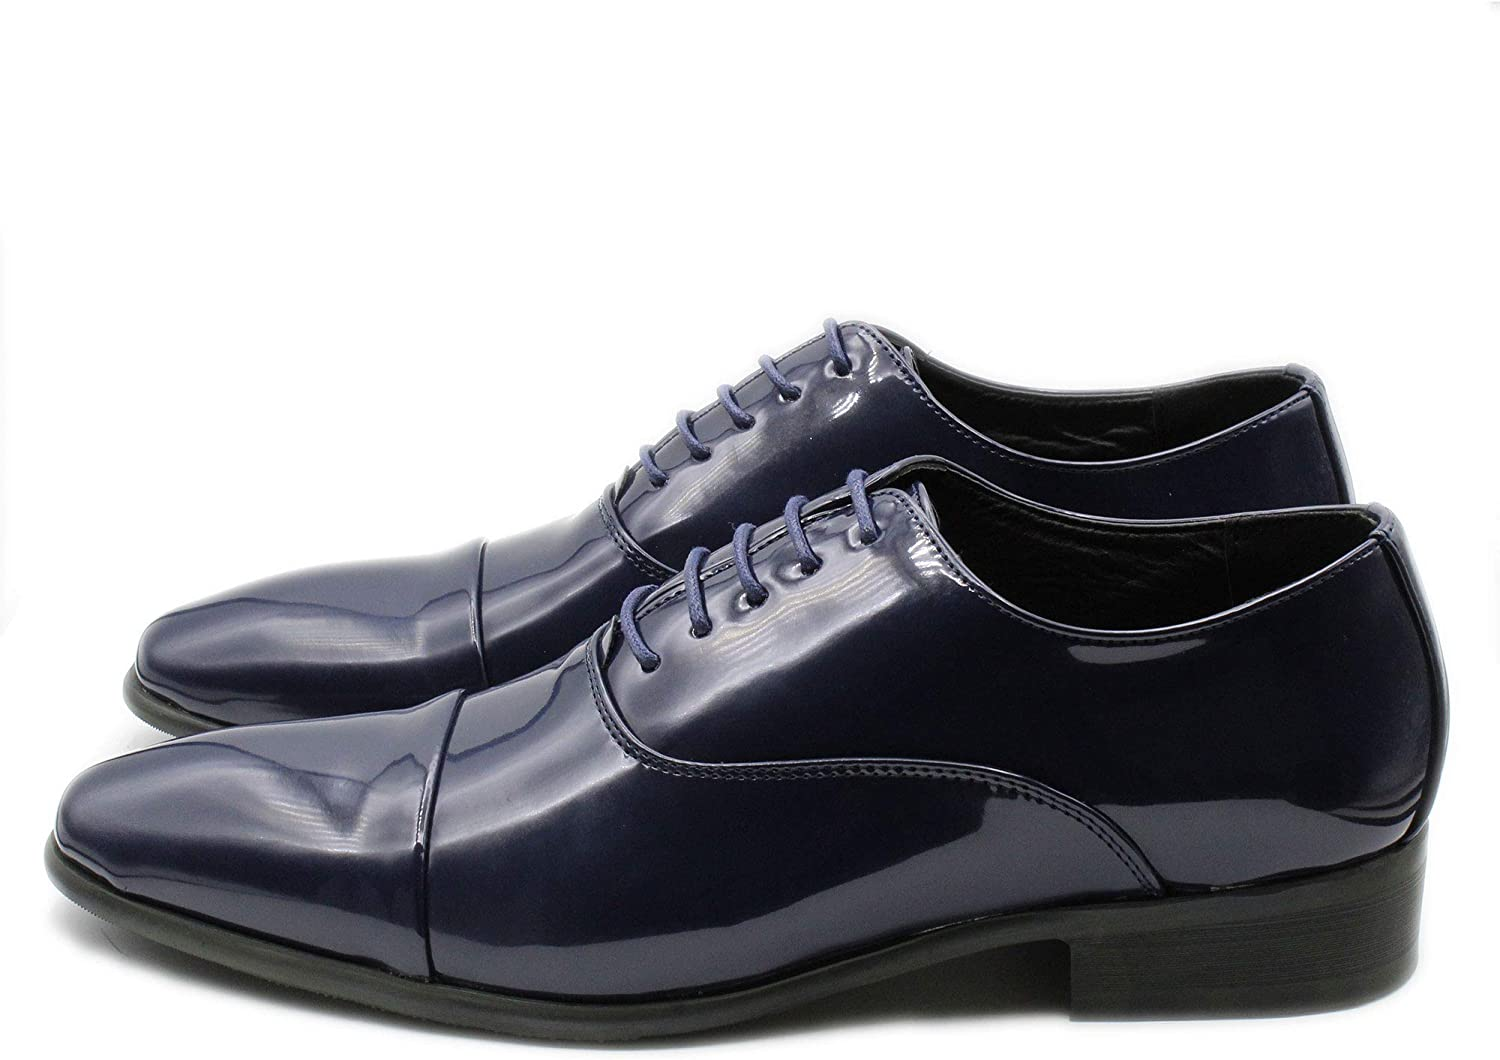 Mens shoes Elegant Leather Polished Smooth bluee lace-up shoes Oxford Classic shoes with Glossy Ceremony Elegant Solid color 40 41 42 43 44 45